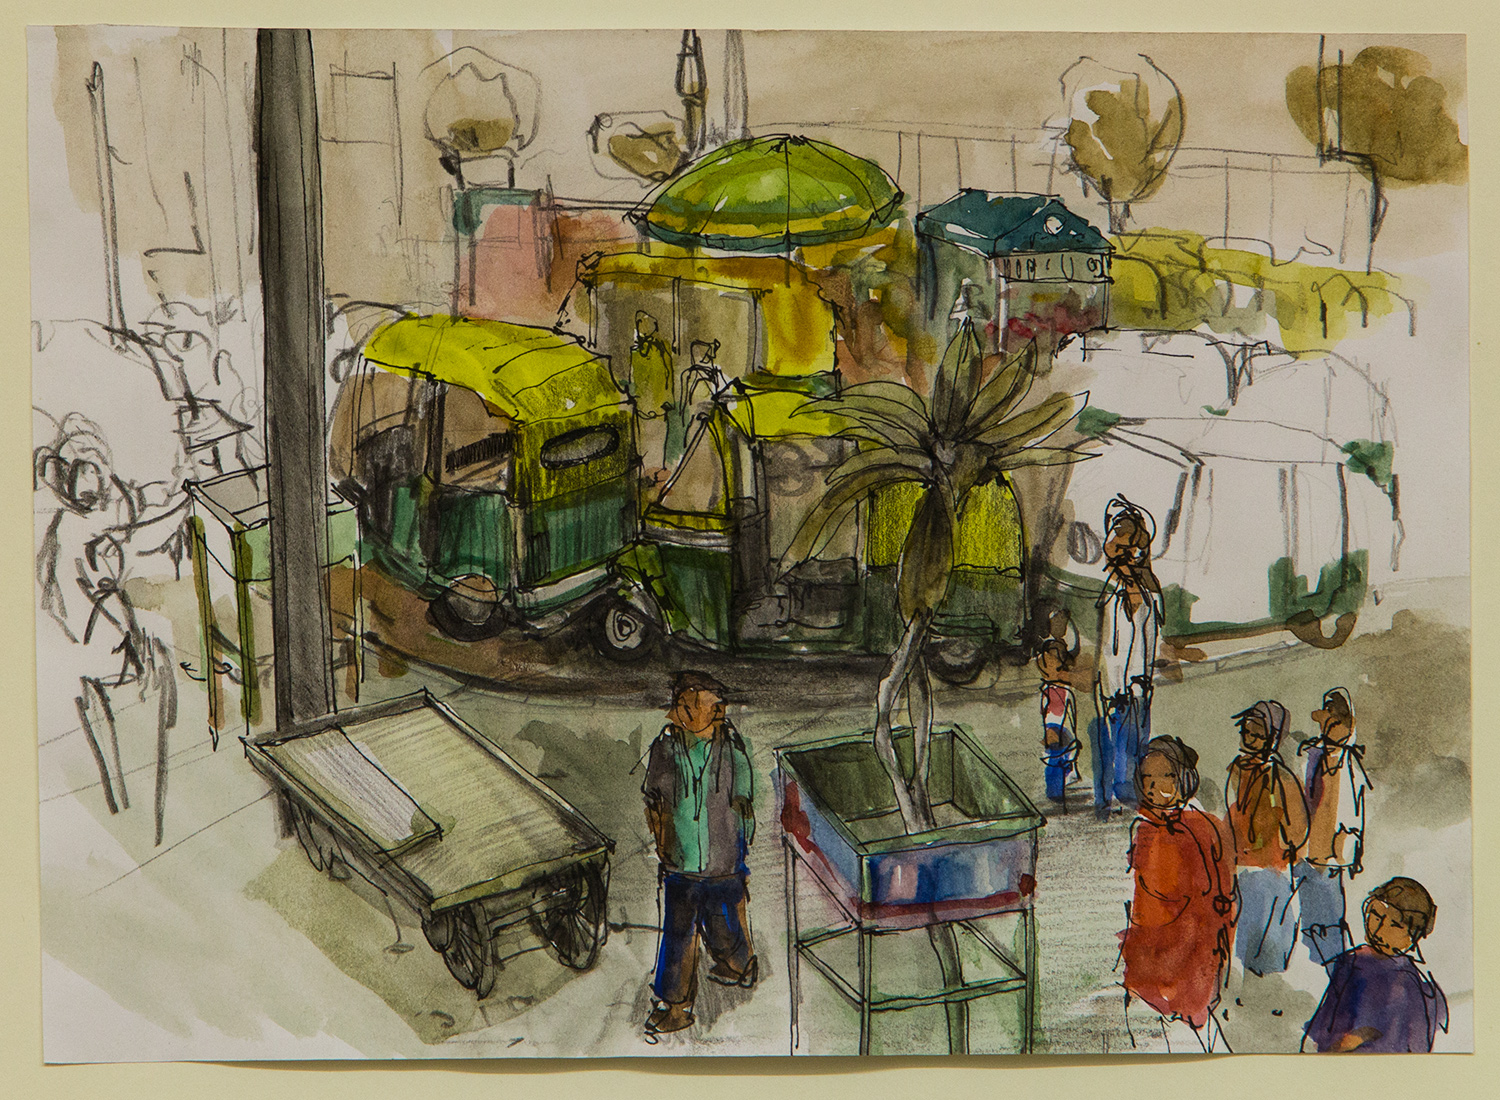 Malvya Nagar; 28 x 20 cm; watercolour, ink and coloured pencil on Paper; 2016